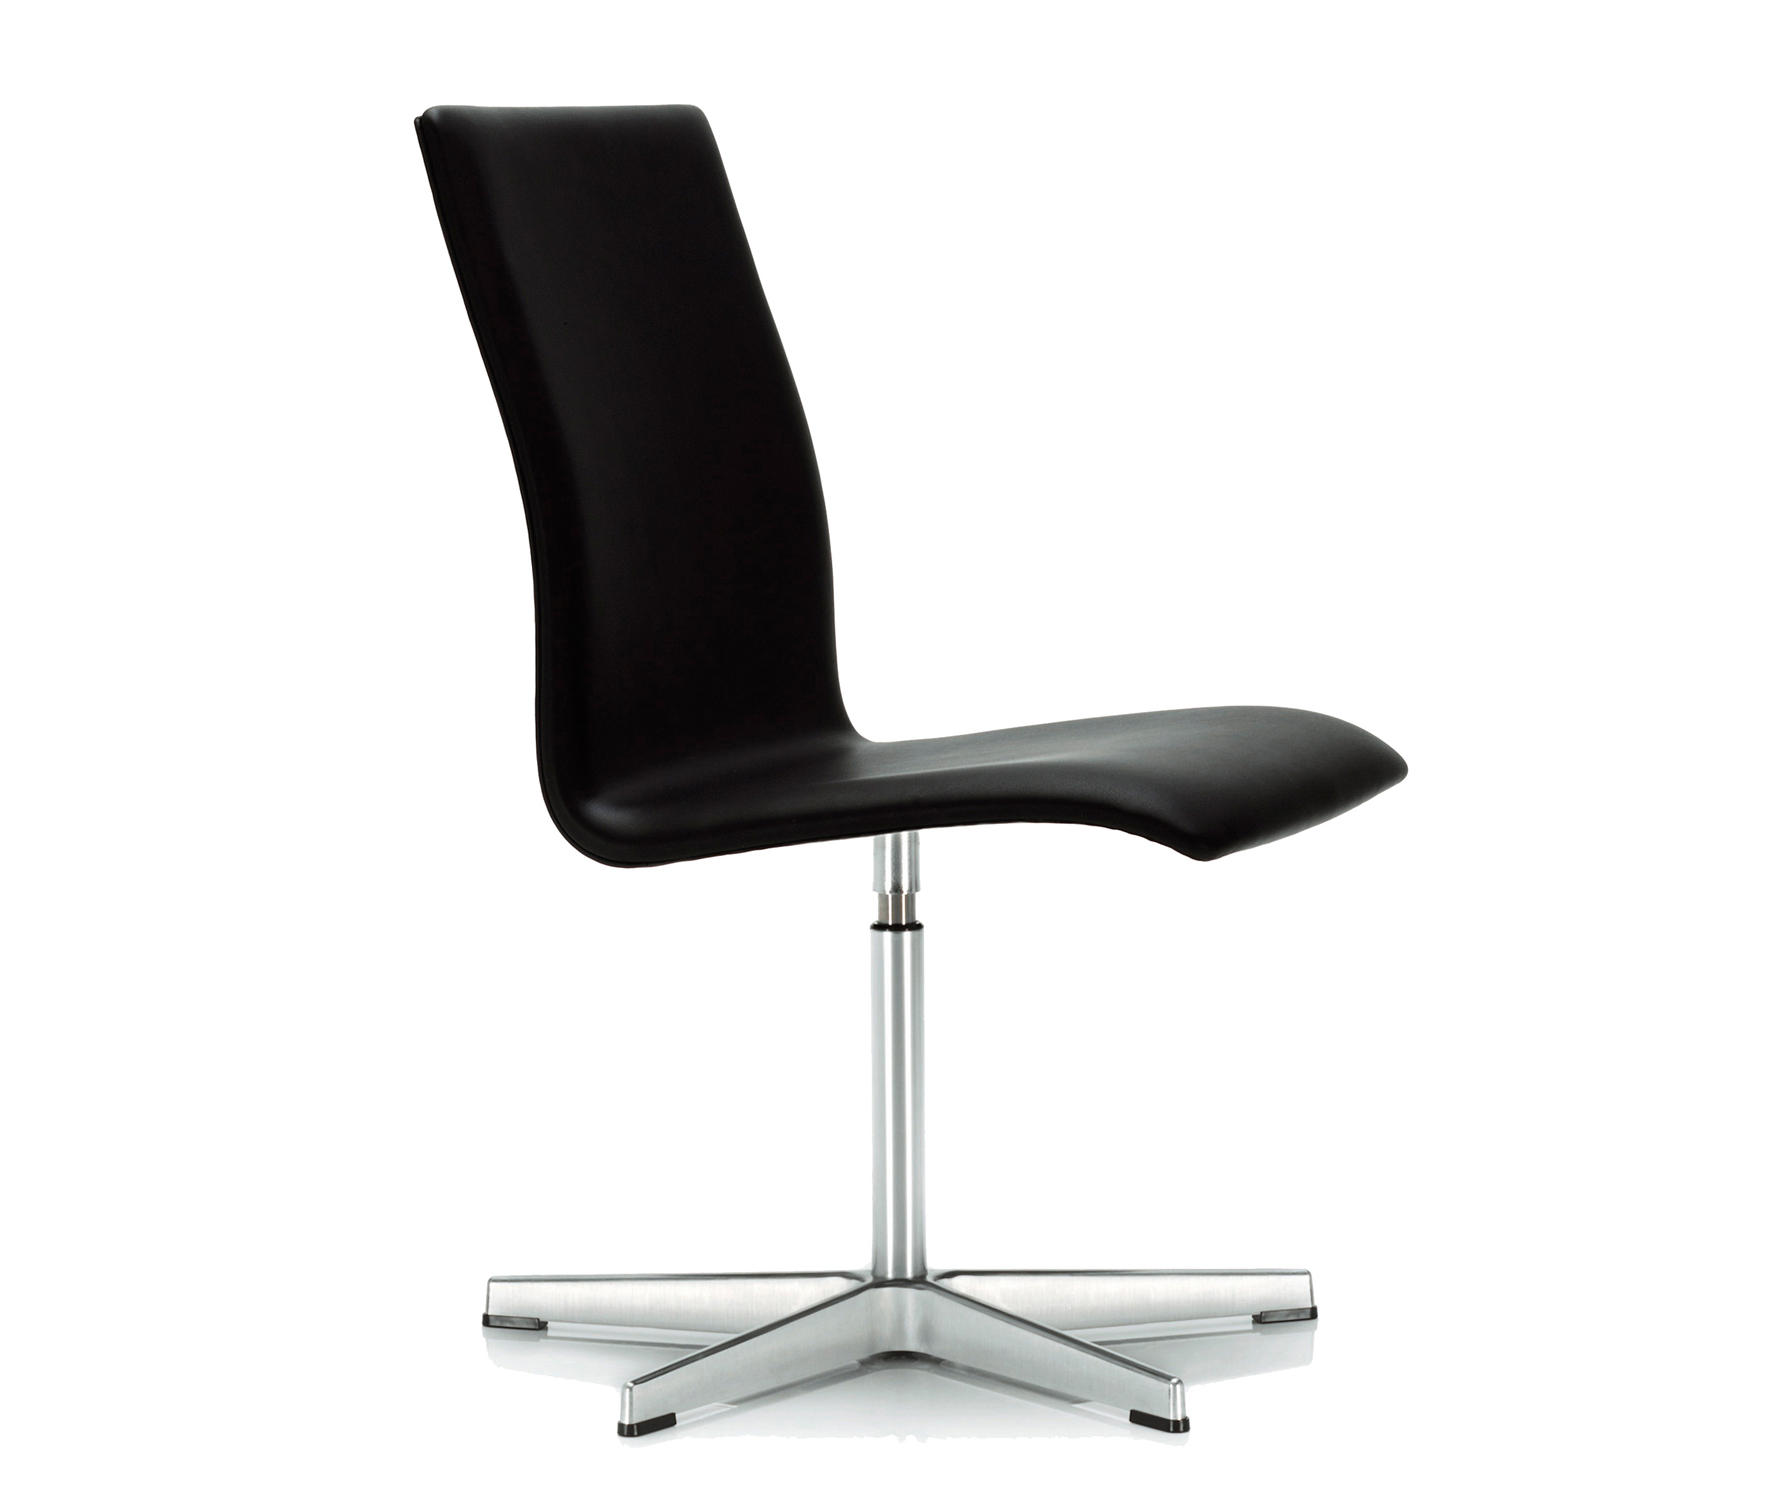 Arne Jacobsen Stuhl Oxford 3171 Chairs From Fritz Hansen Architonic